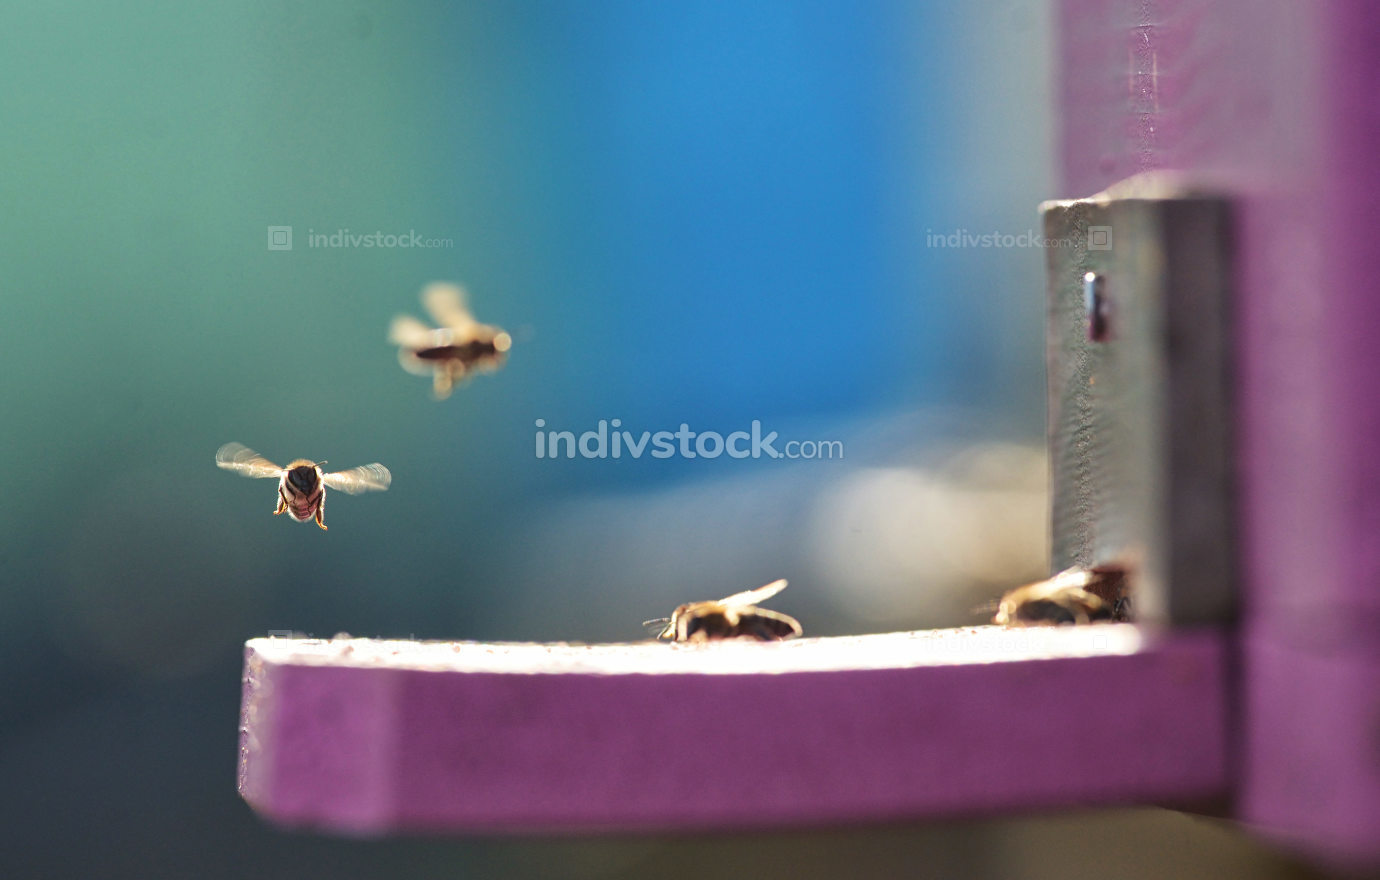 Close up of flying bees